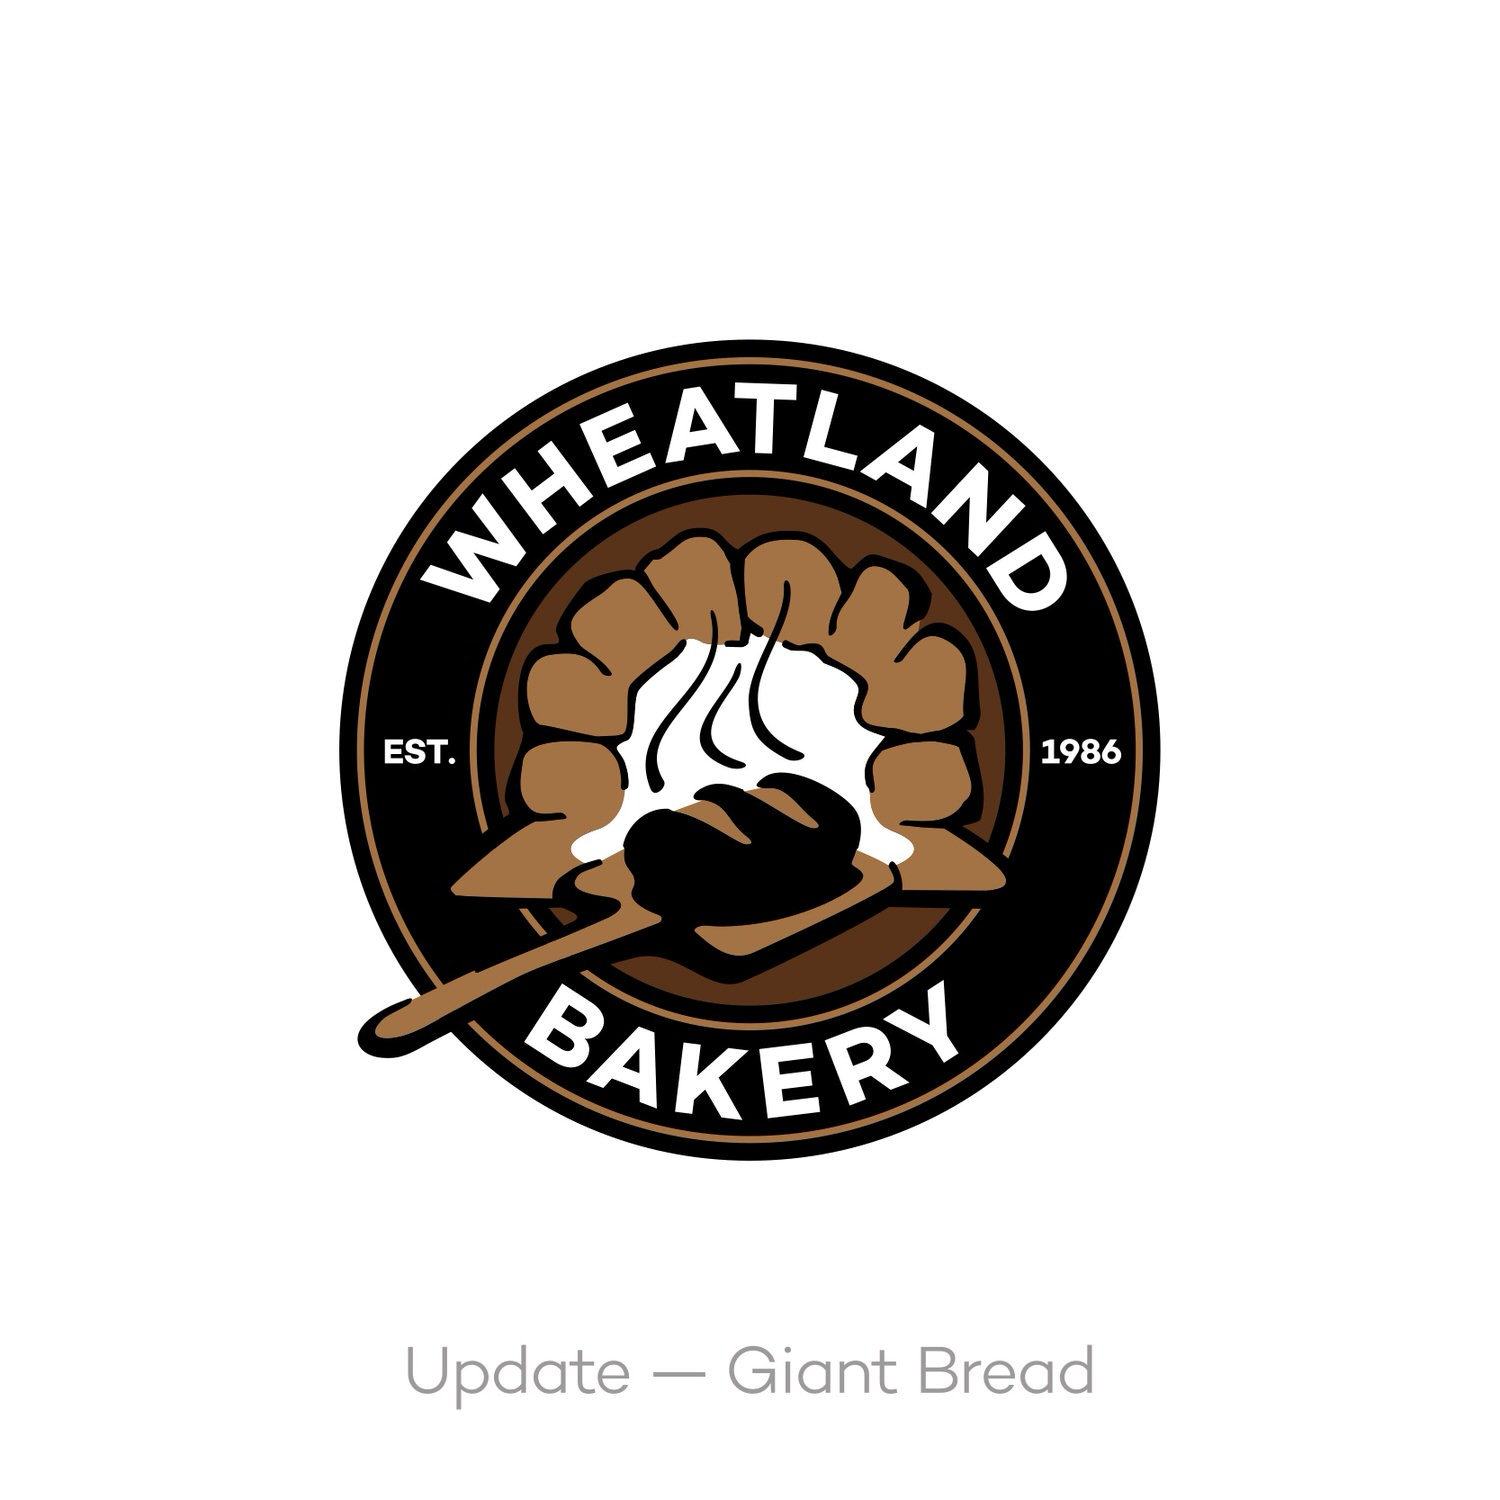 Wheatland-Logo-Options-13.jpg